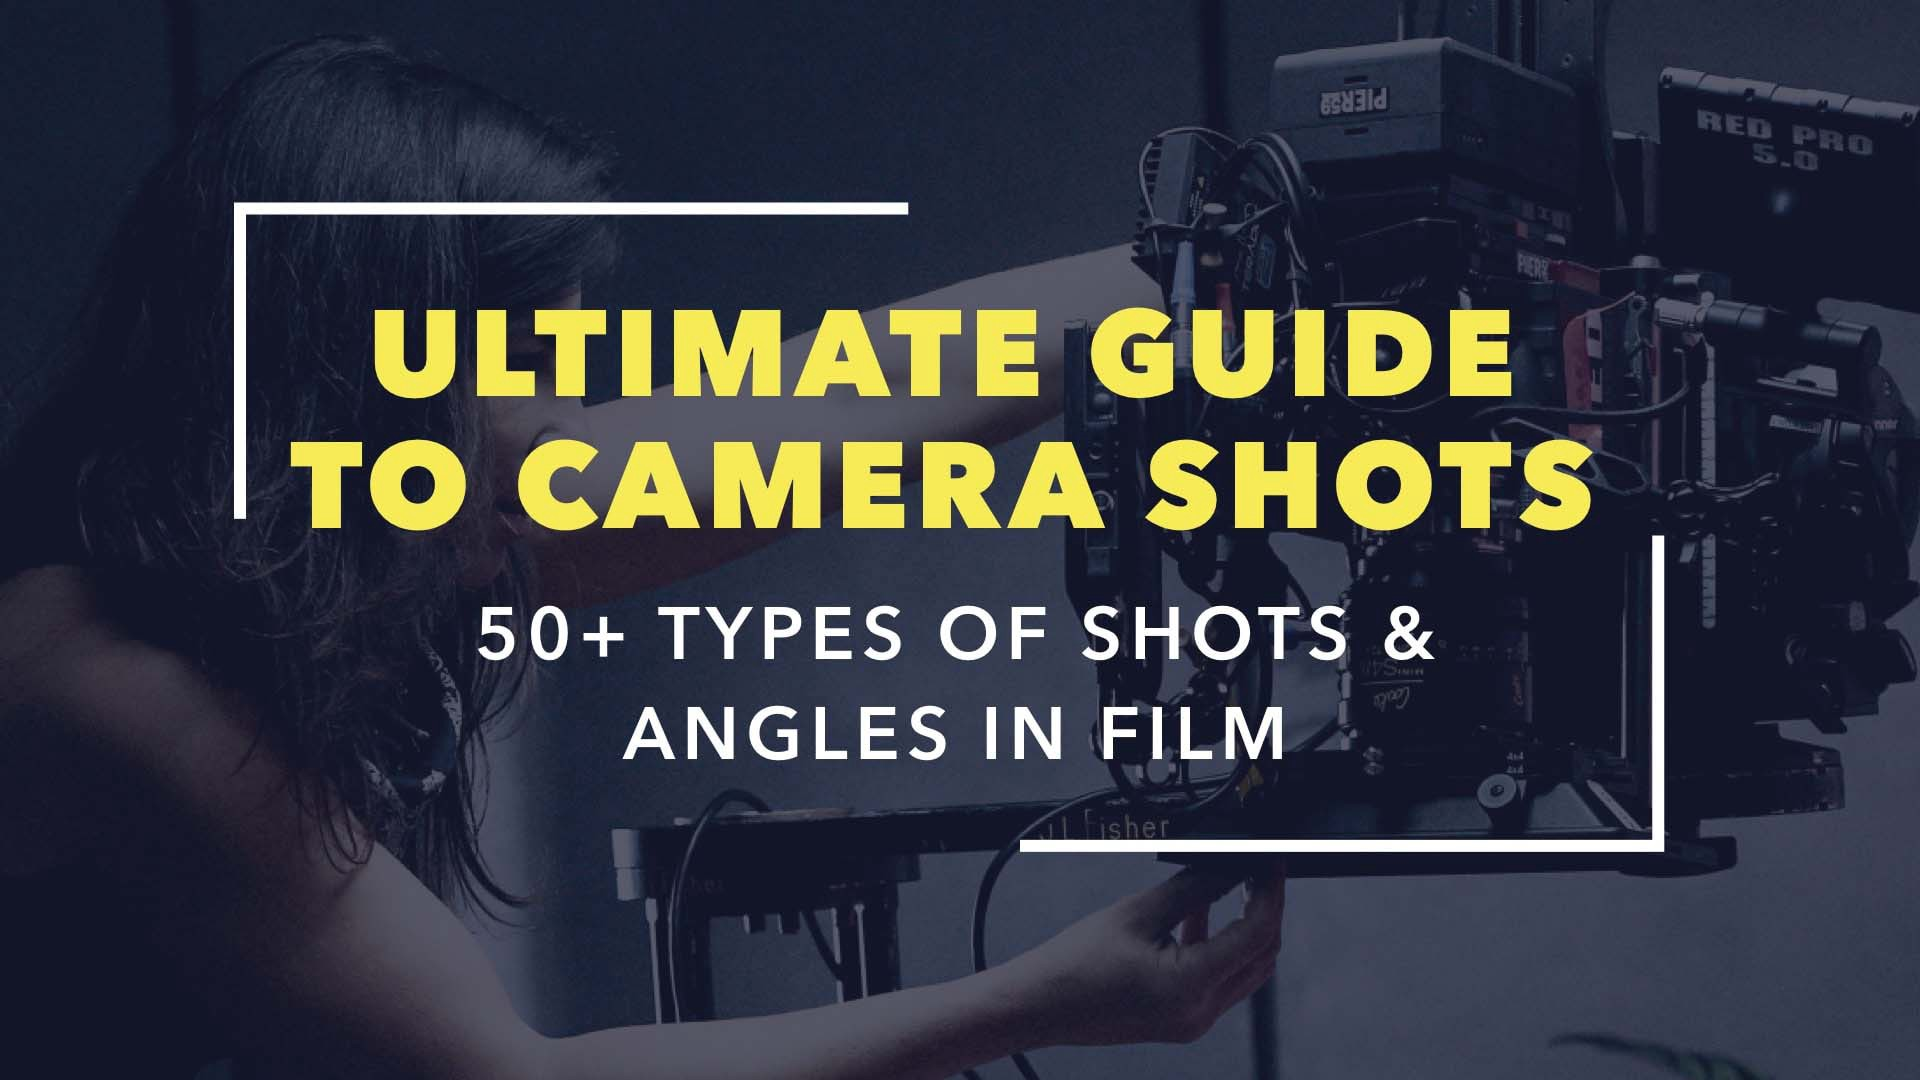 The Ultimate Guide To Camera Shots Over 50 Types Of And Angles In Film